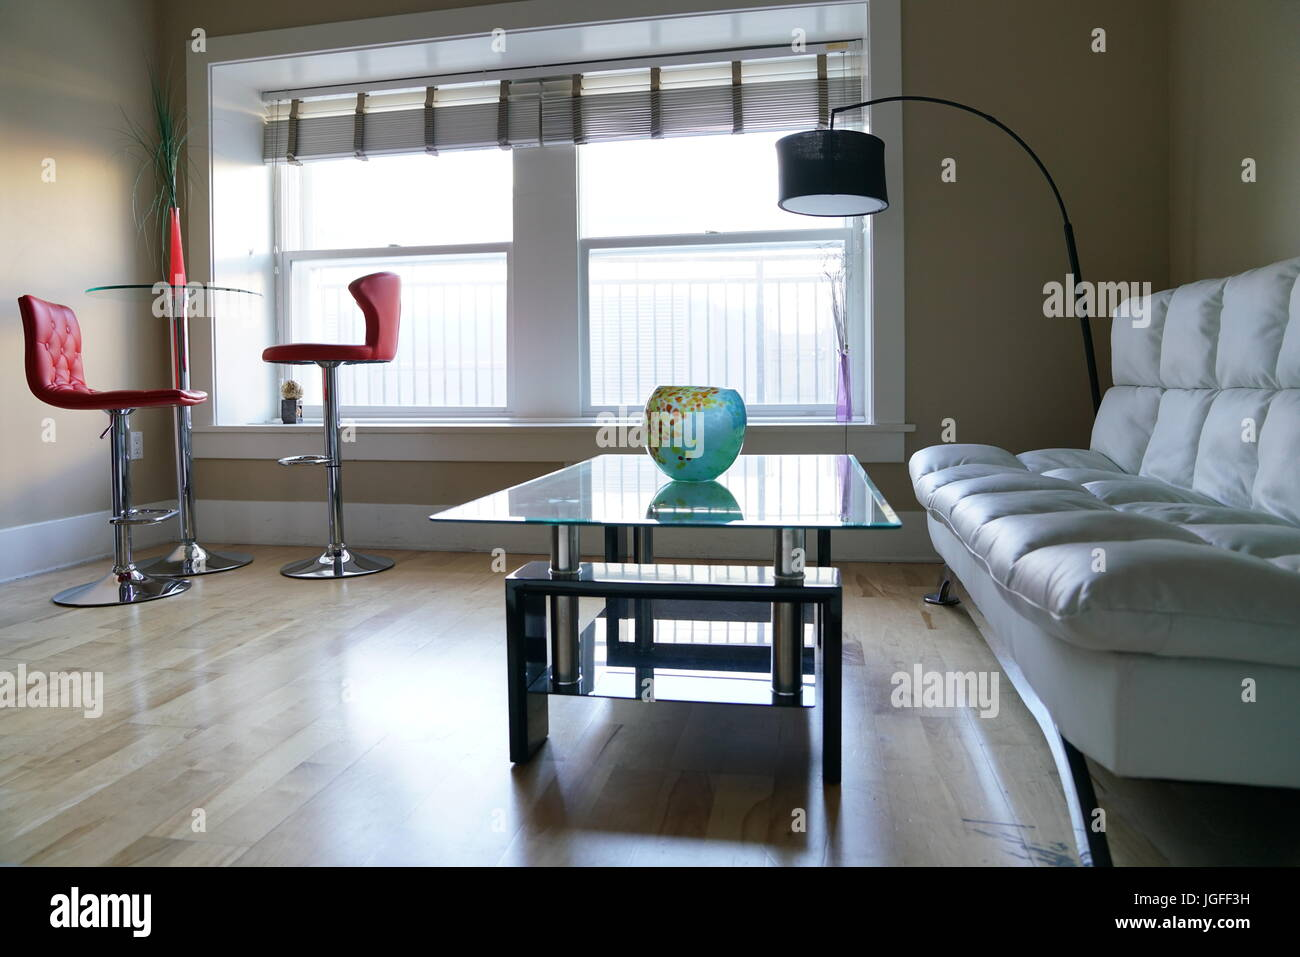 2 Glass Dining Table 2 Red Chair 1 Sofa In The Dining Room Or Stock Photo Alamy